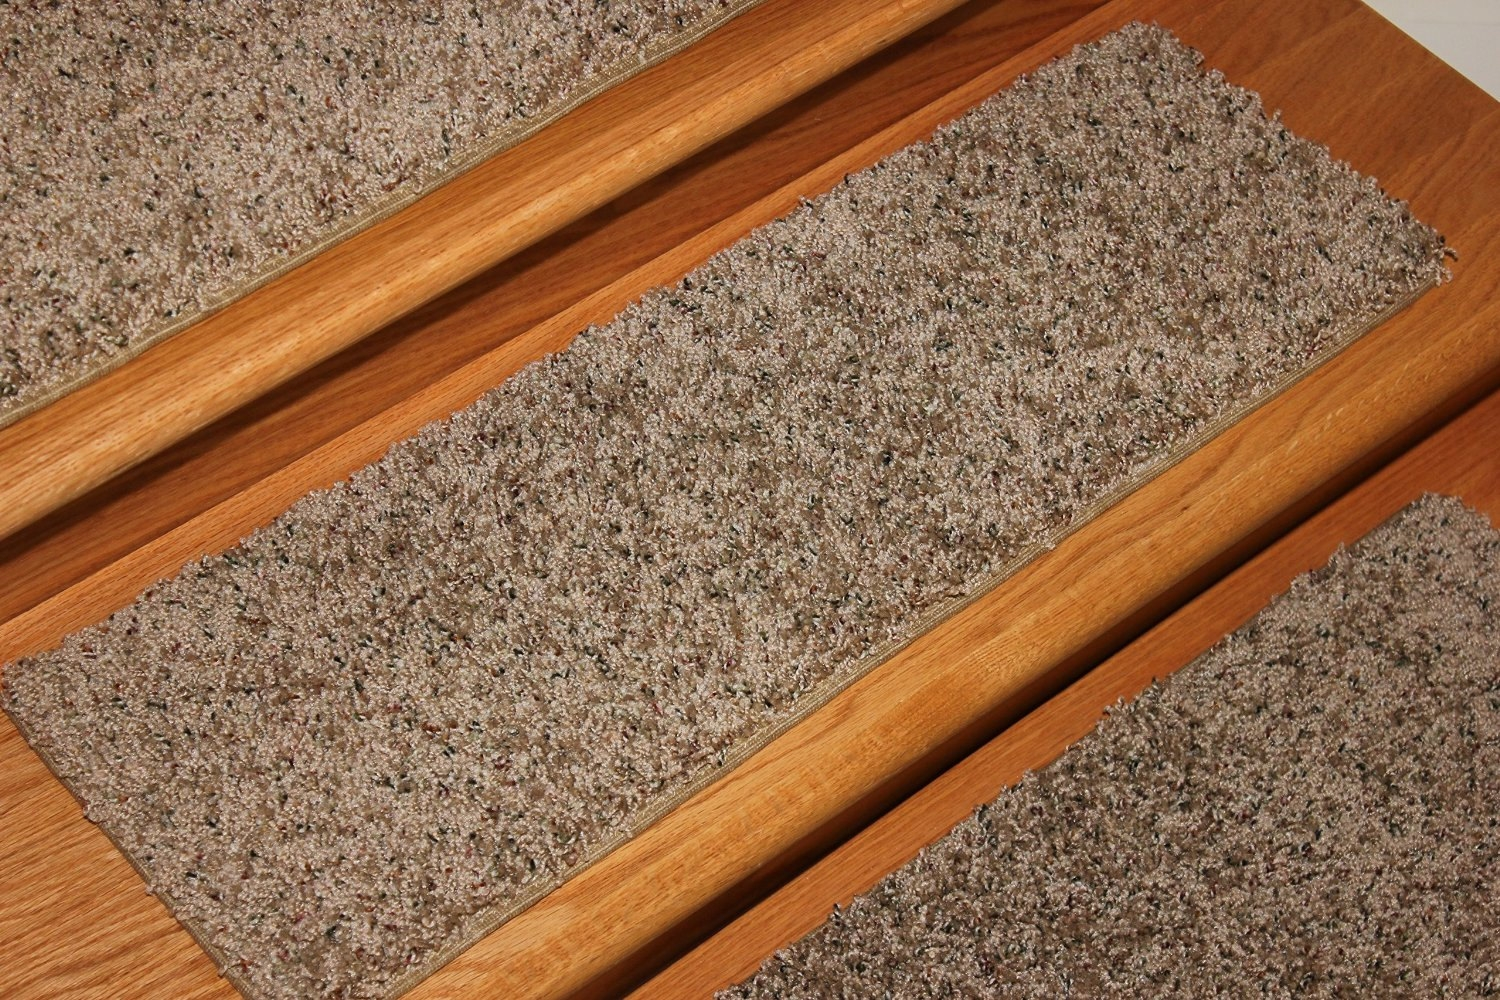 Stair Treads Etsy Pertaining To Stair Tread Rug Sets (Image 13 of 15)